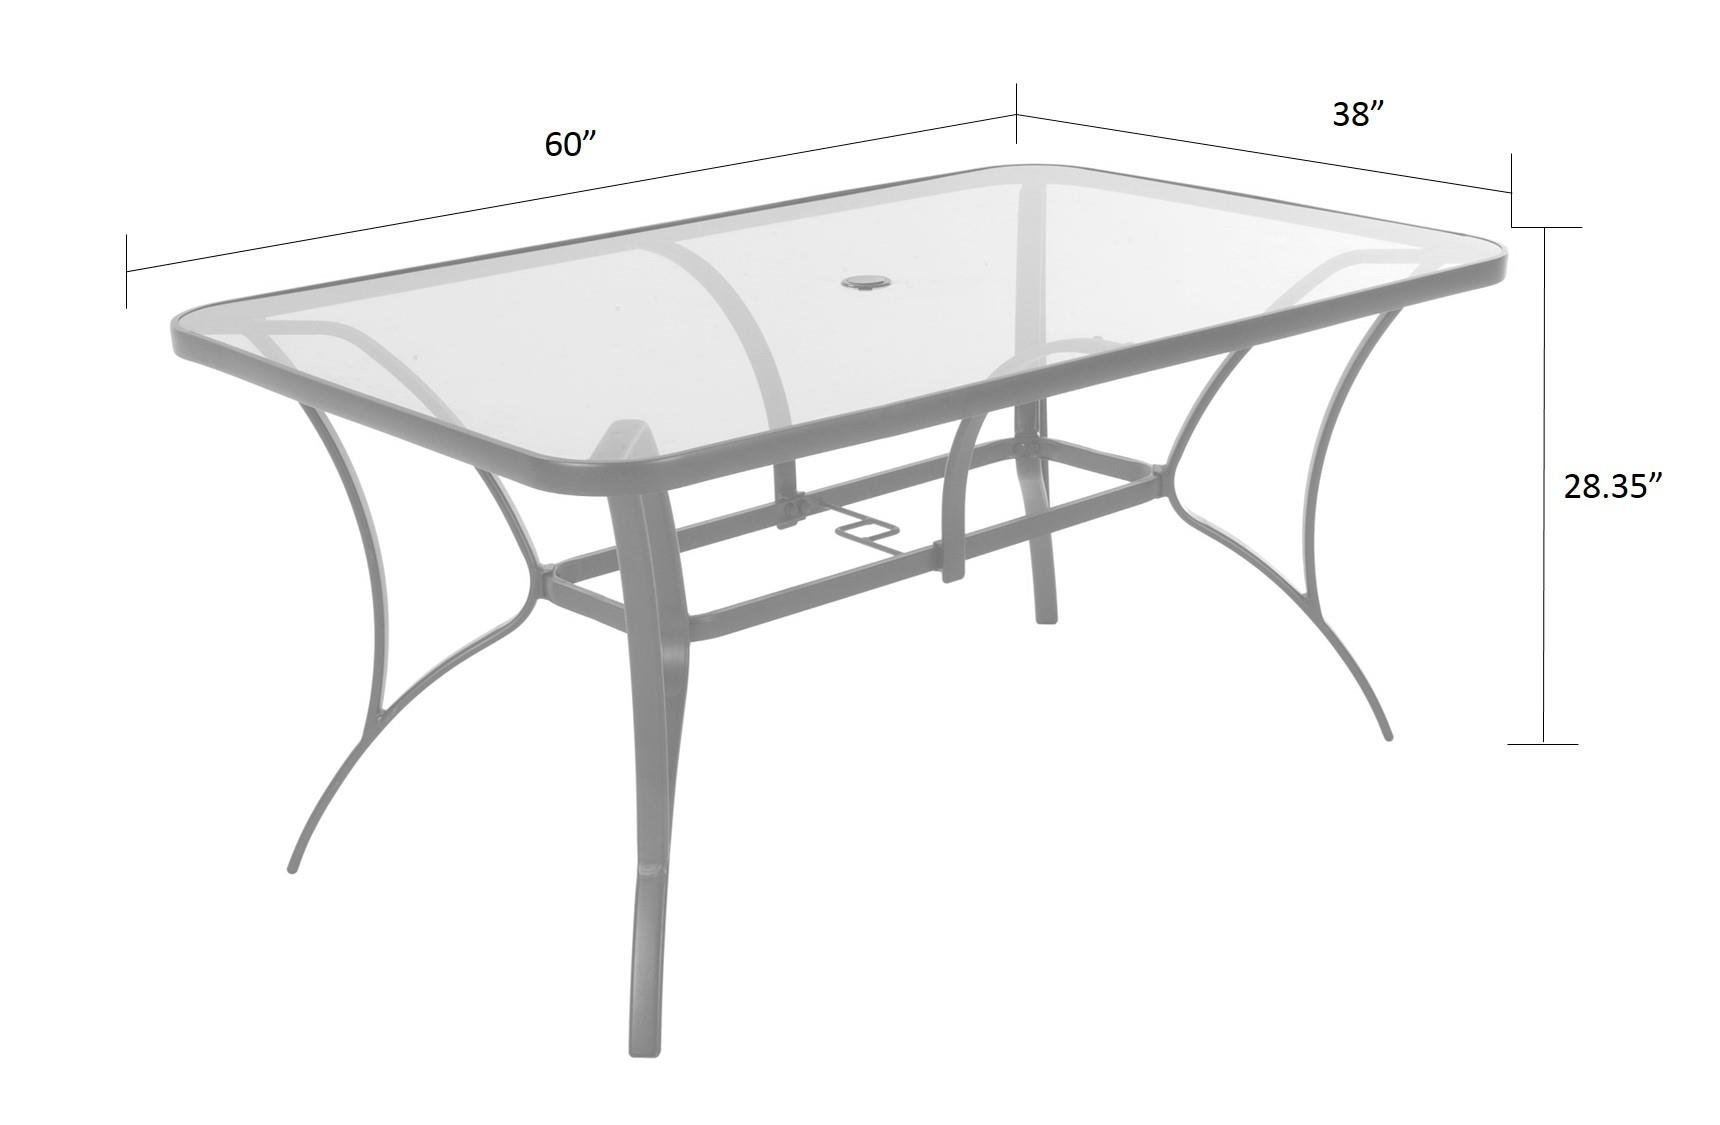 COSCO 88647GLGE Outdoor Living 7 Piece Paloma Steel Patio Dining Set, Light/Dark Gray by Cosco Outdoor Living (Image #2)